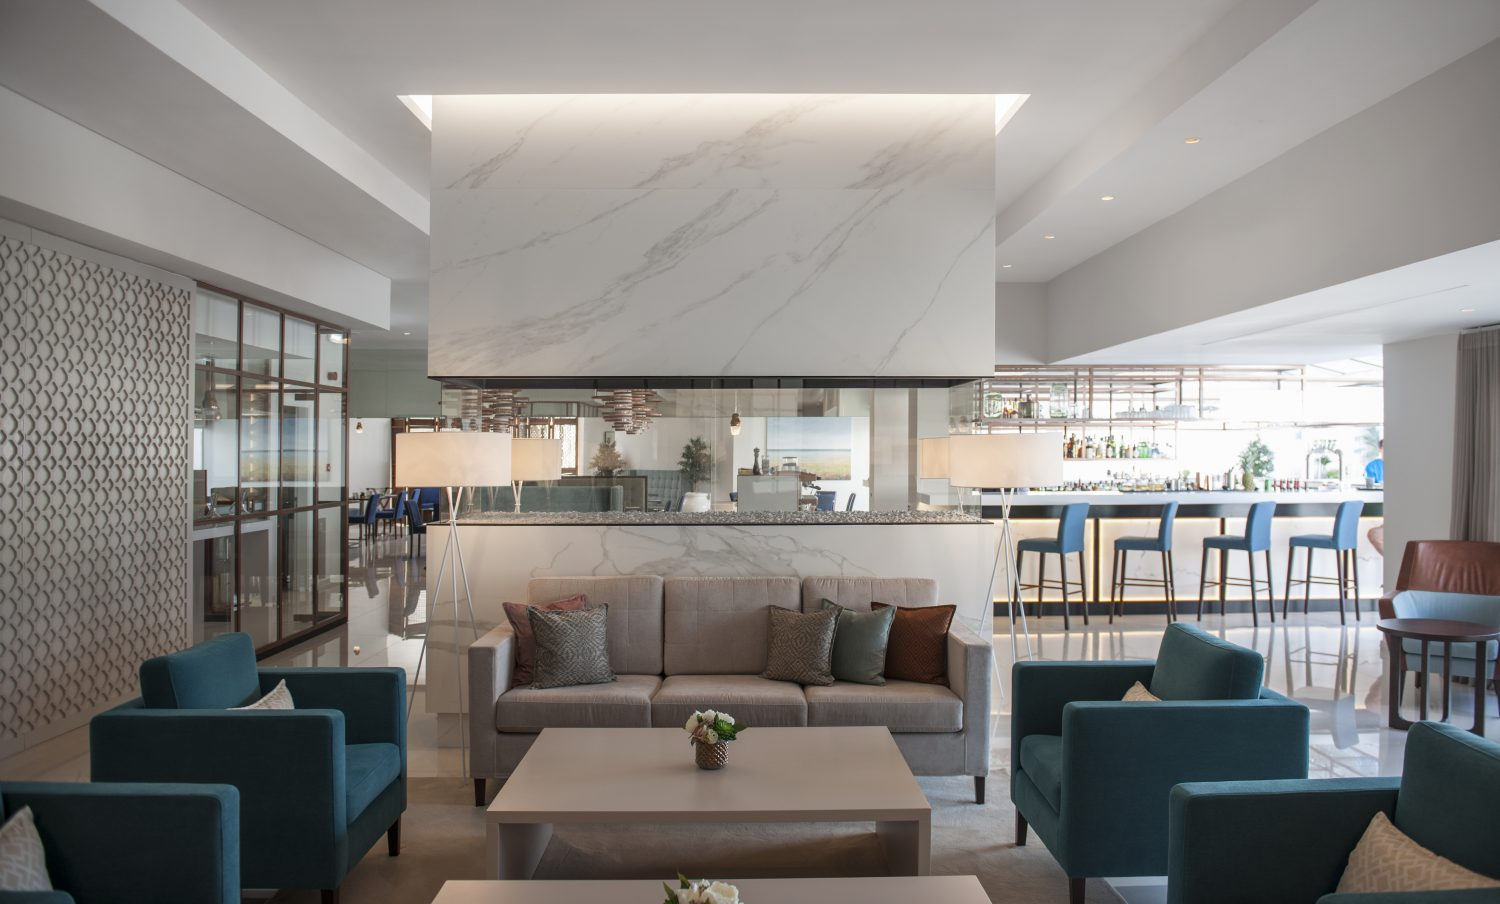 Four Seasons Fairways Lounge and Fireplace